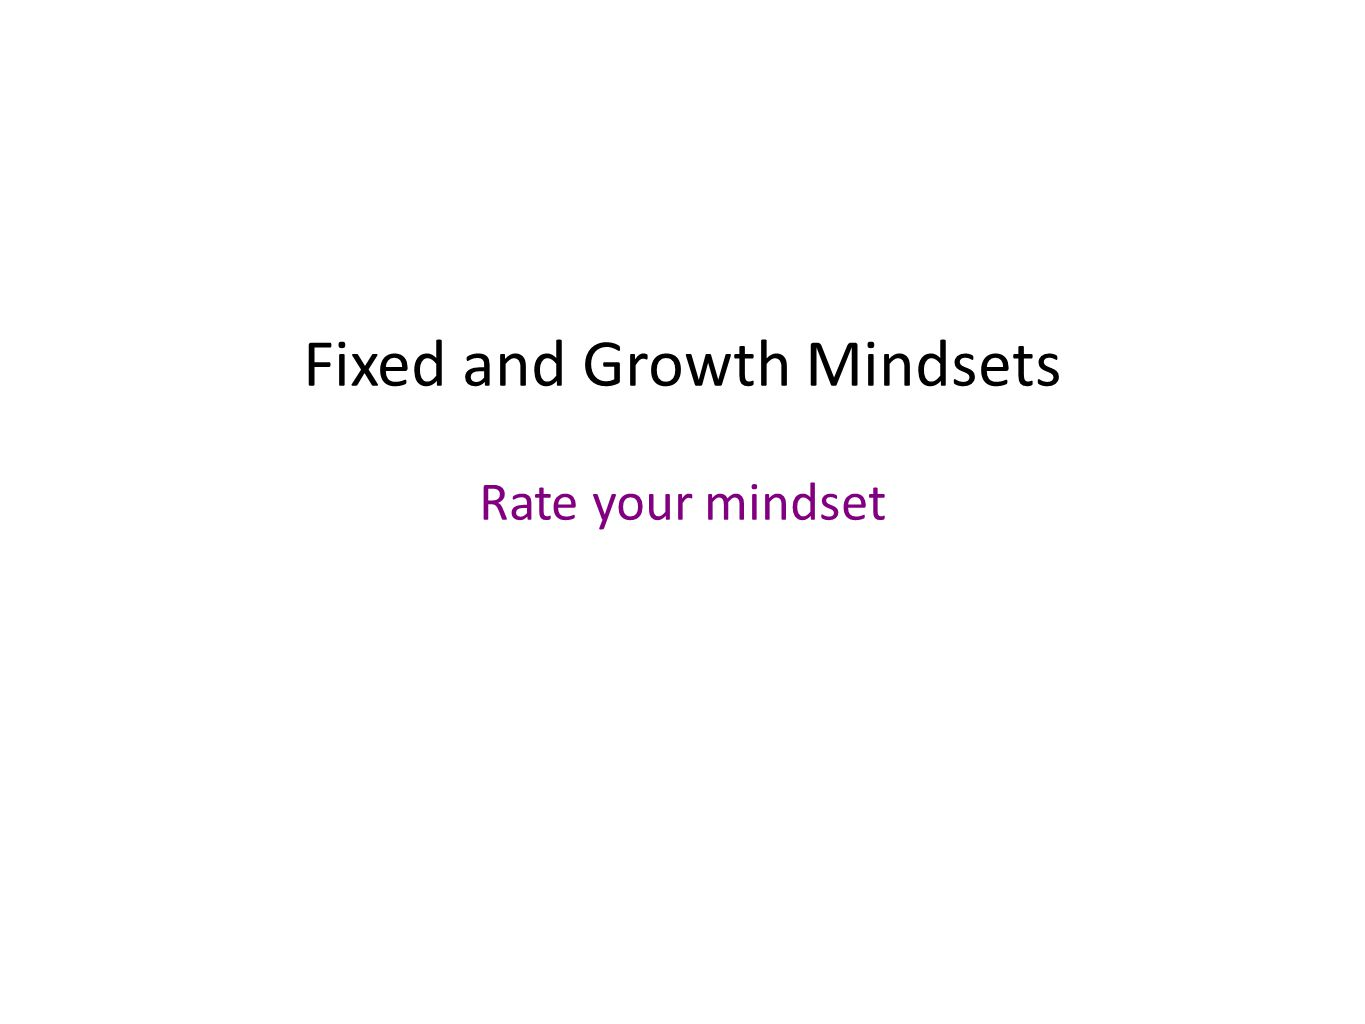 Fixed and Growth Mindsets Rate your mindset